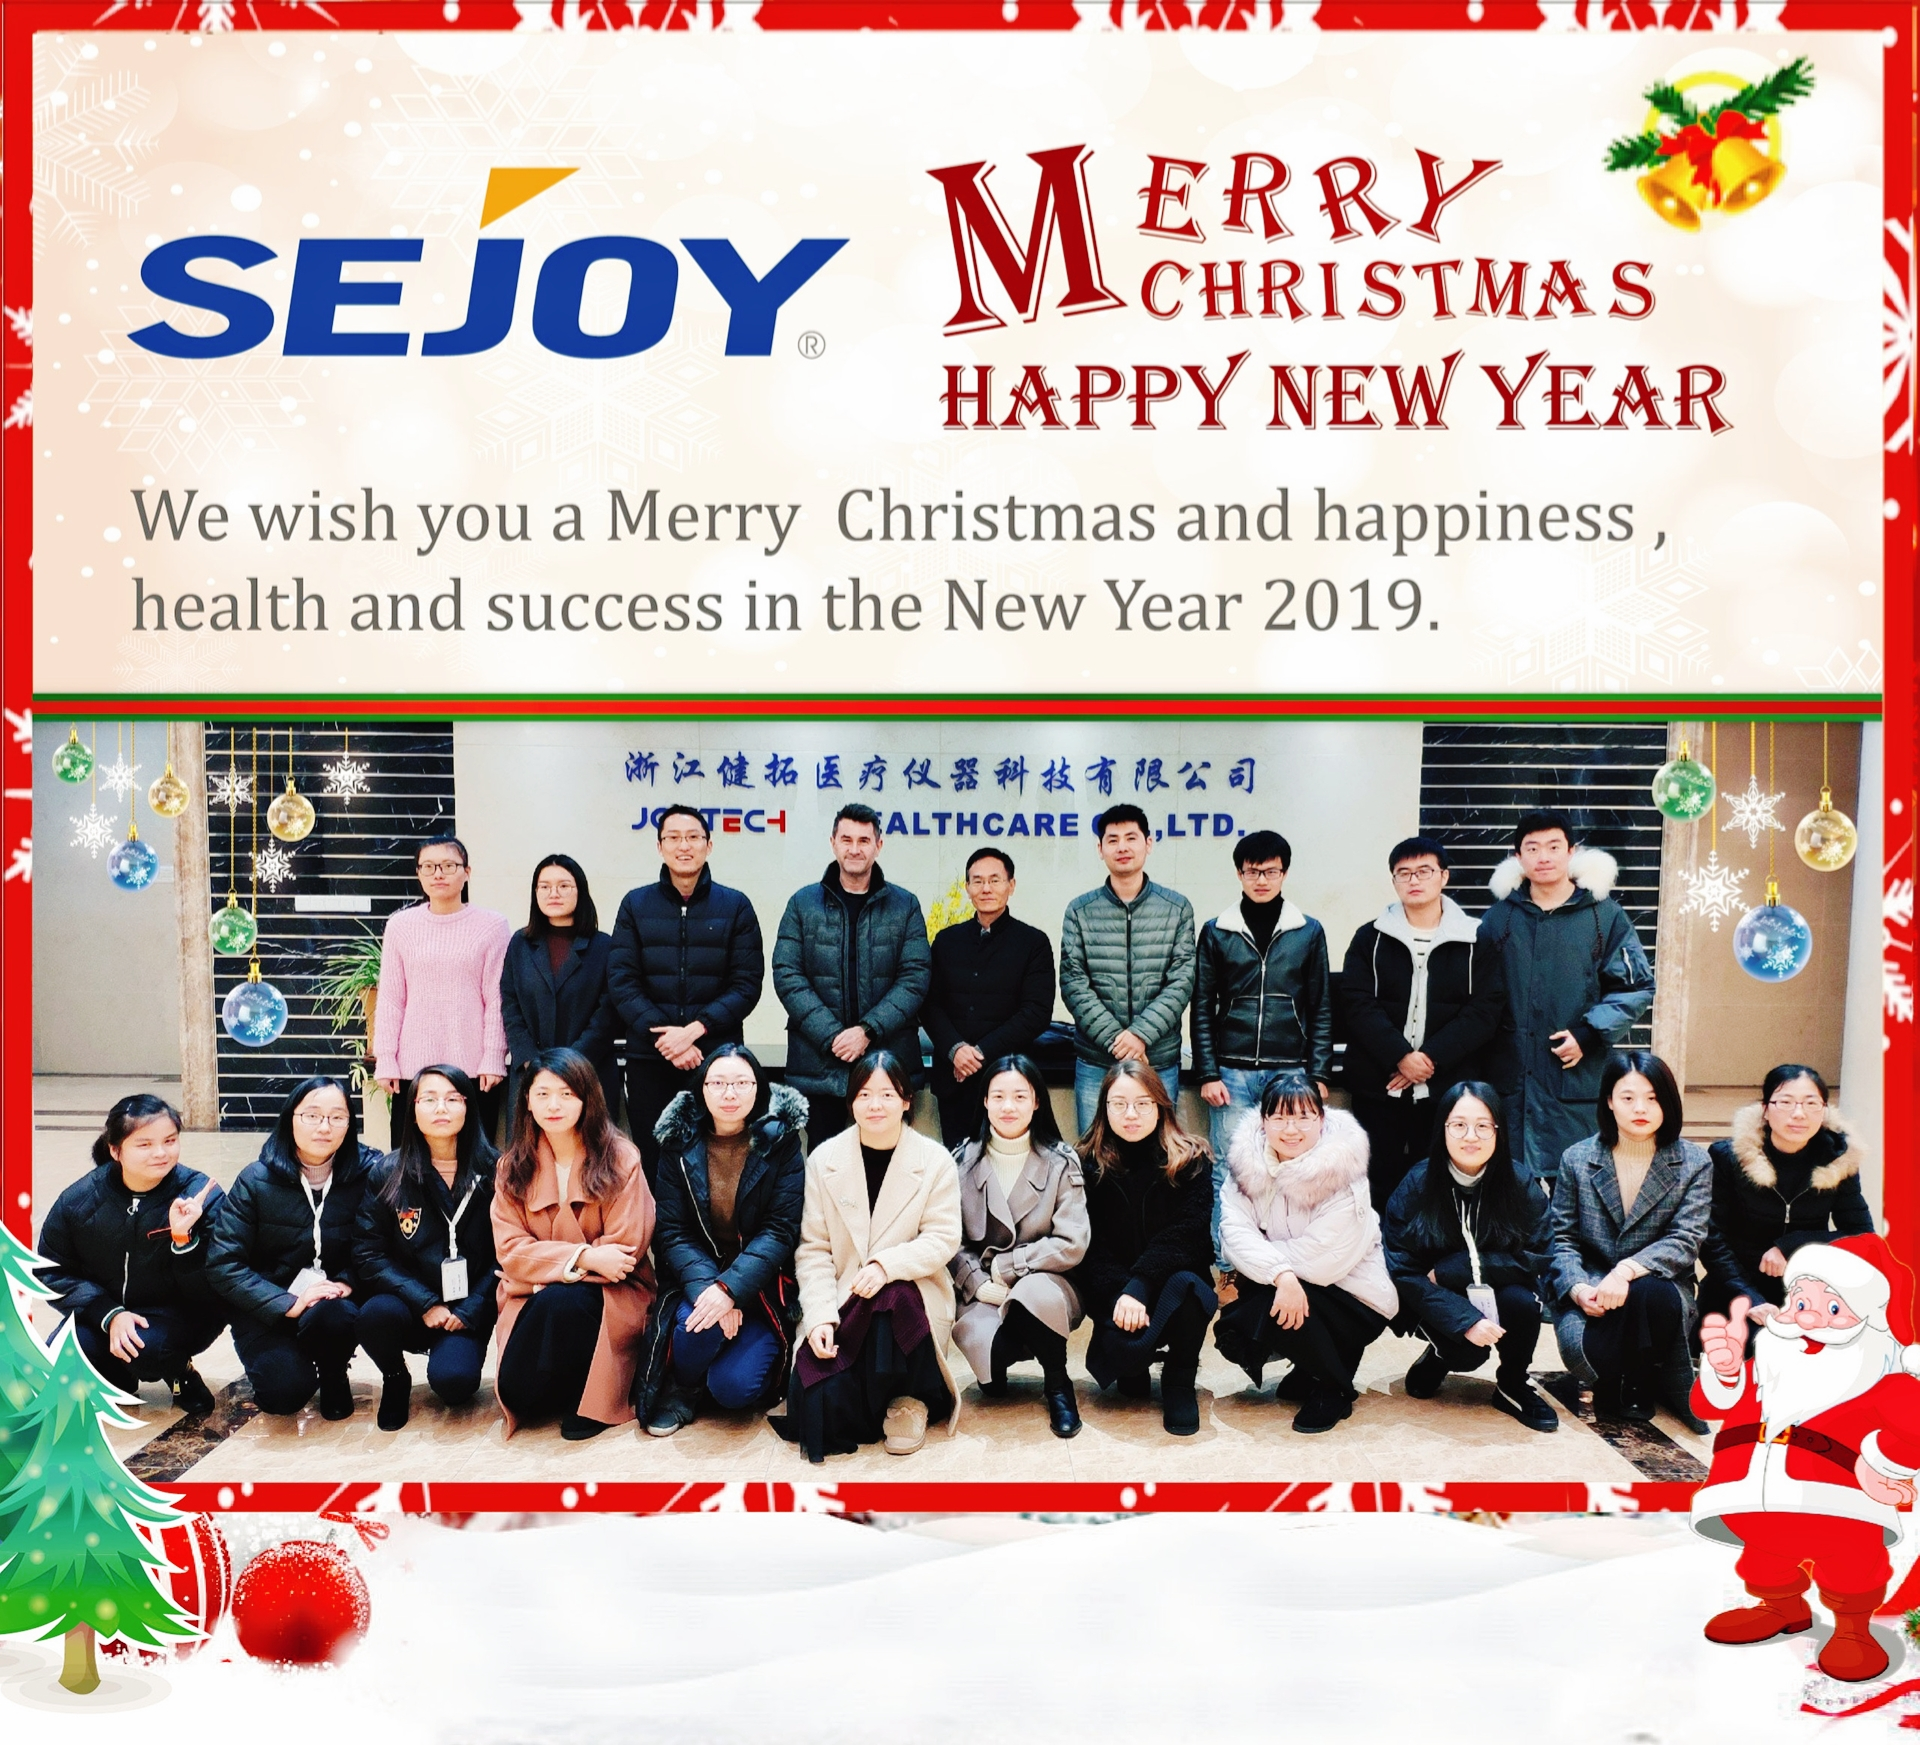 SEJOY BLESSINGS FOR YOU IN 2019!